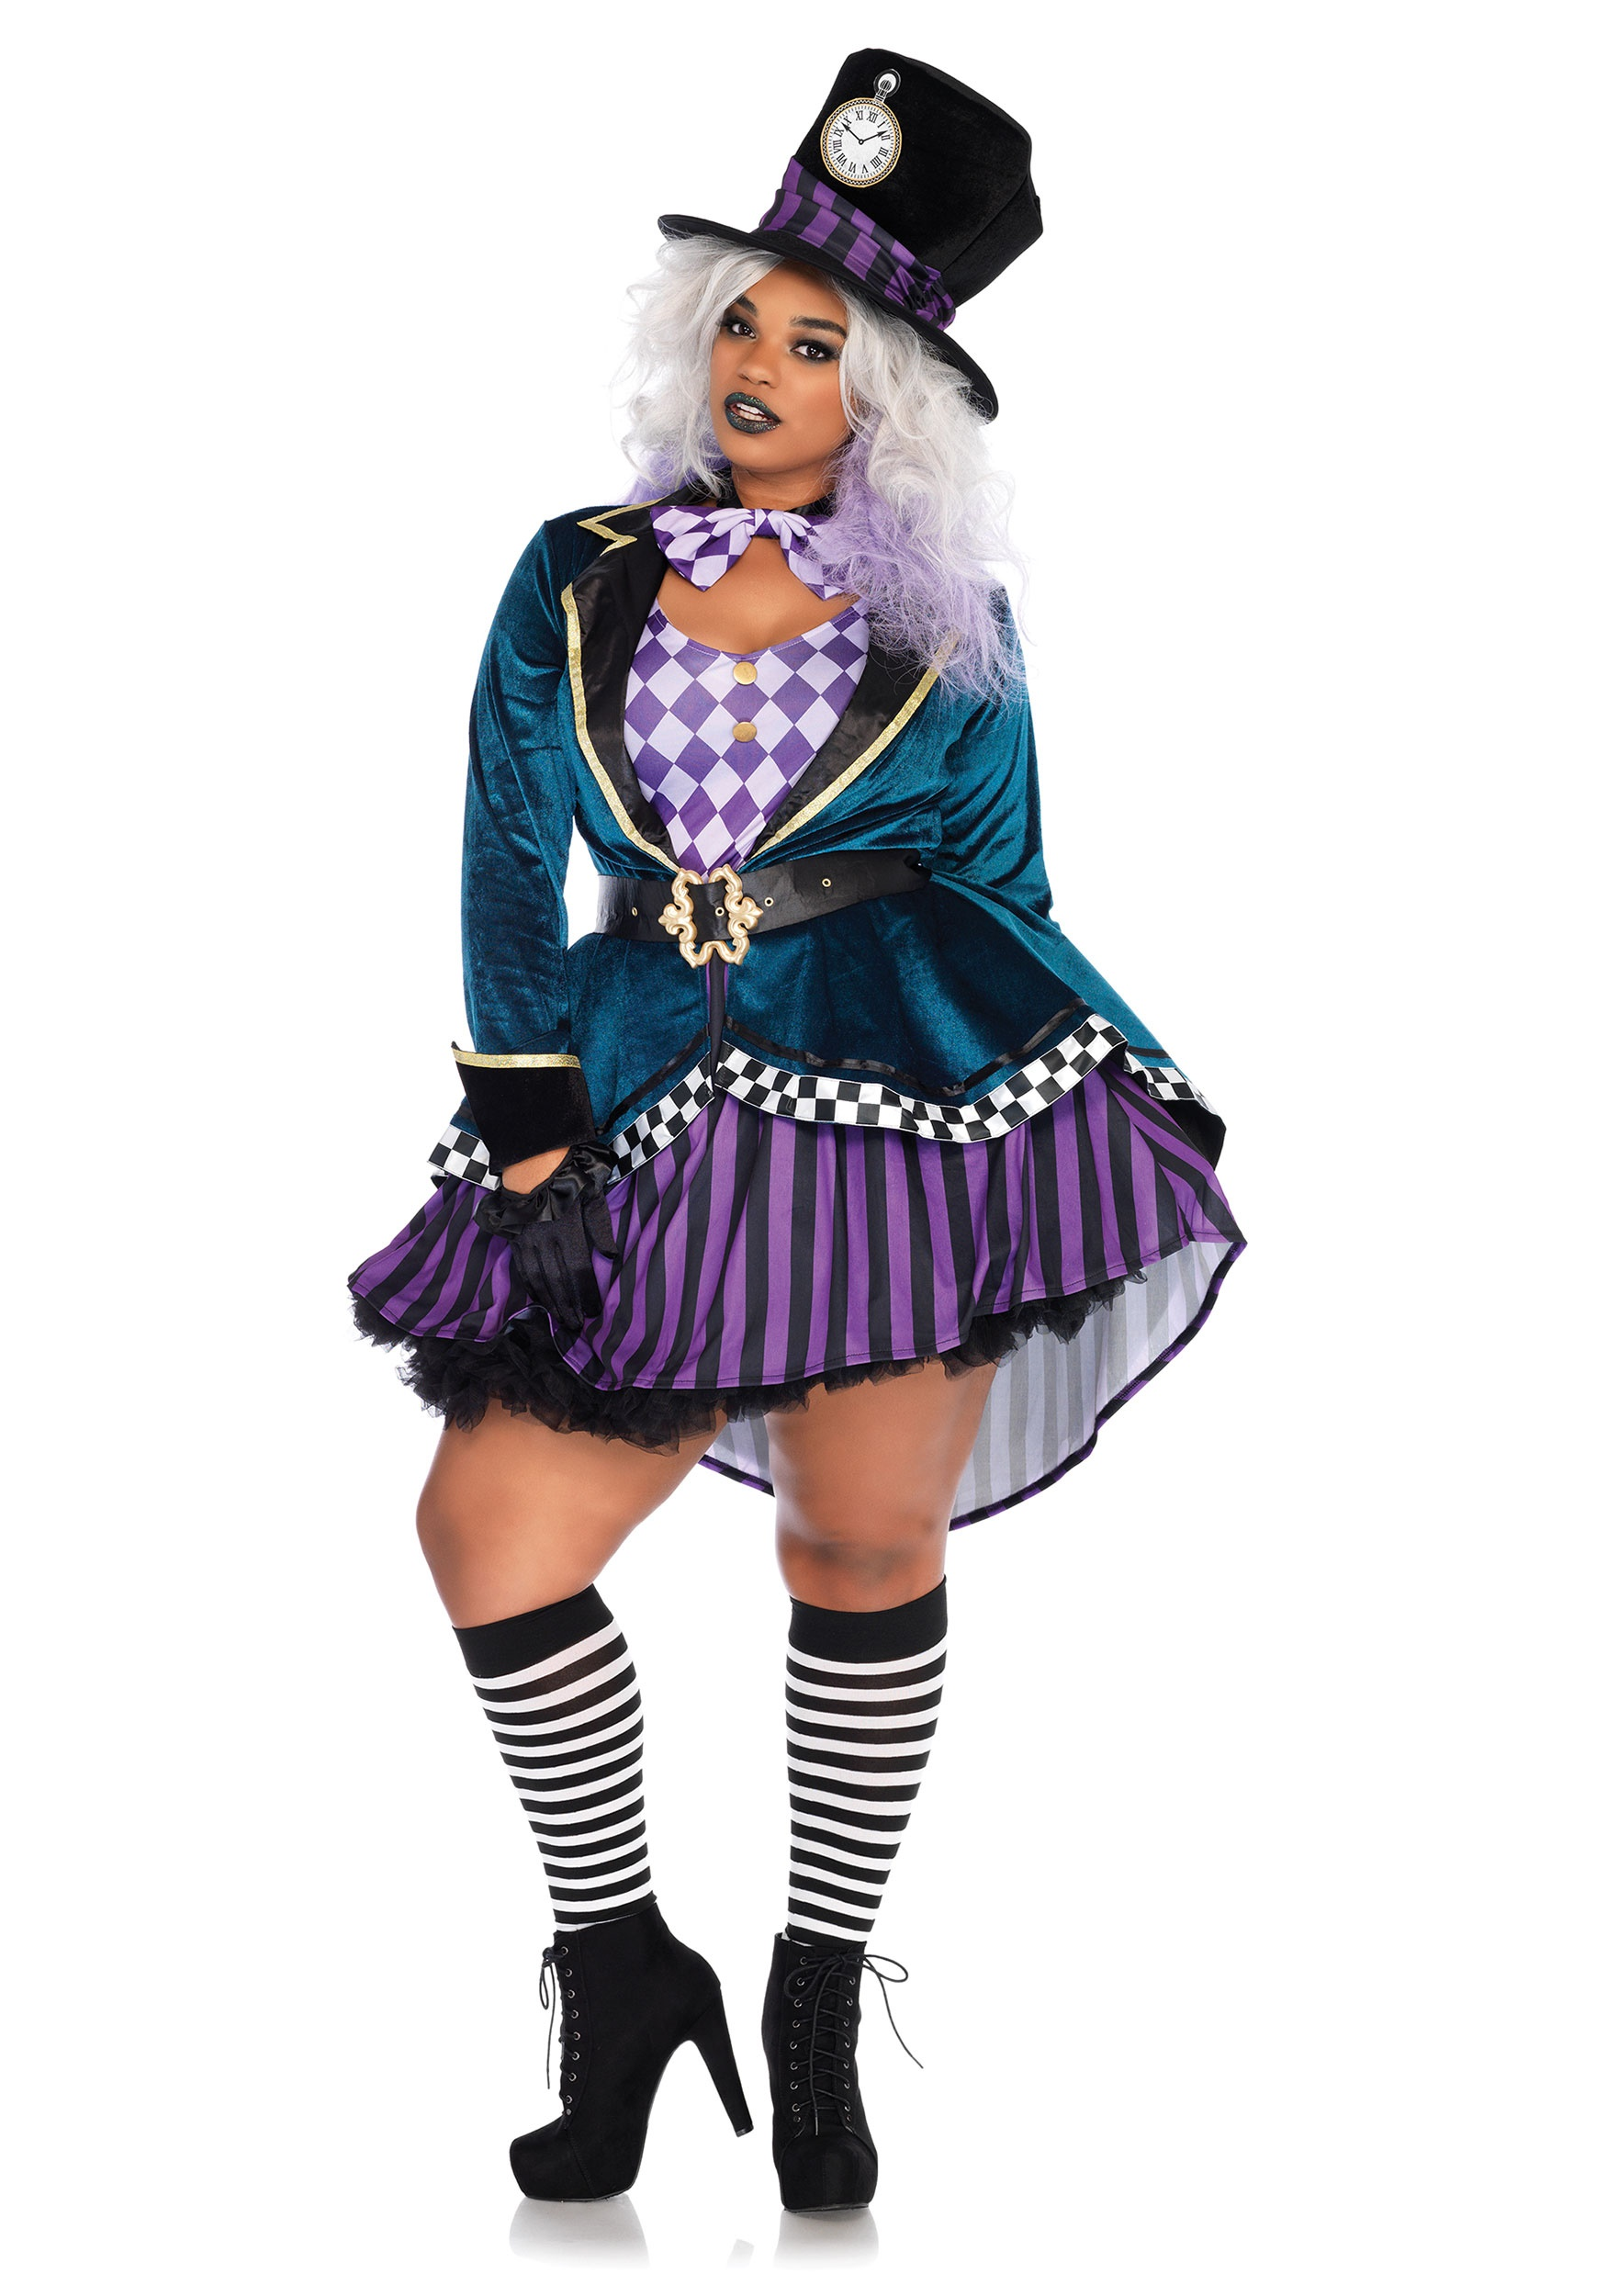 Womenu0027s Plus Size Delightful Mad Hatter Costume  sc 1 st  Halloween Costumes & Plus Size Ladies Delightful Mad Hatter Costume 1X/2X 3X/4X 5X